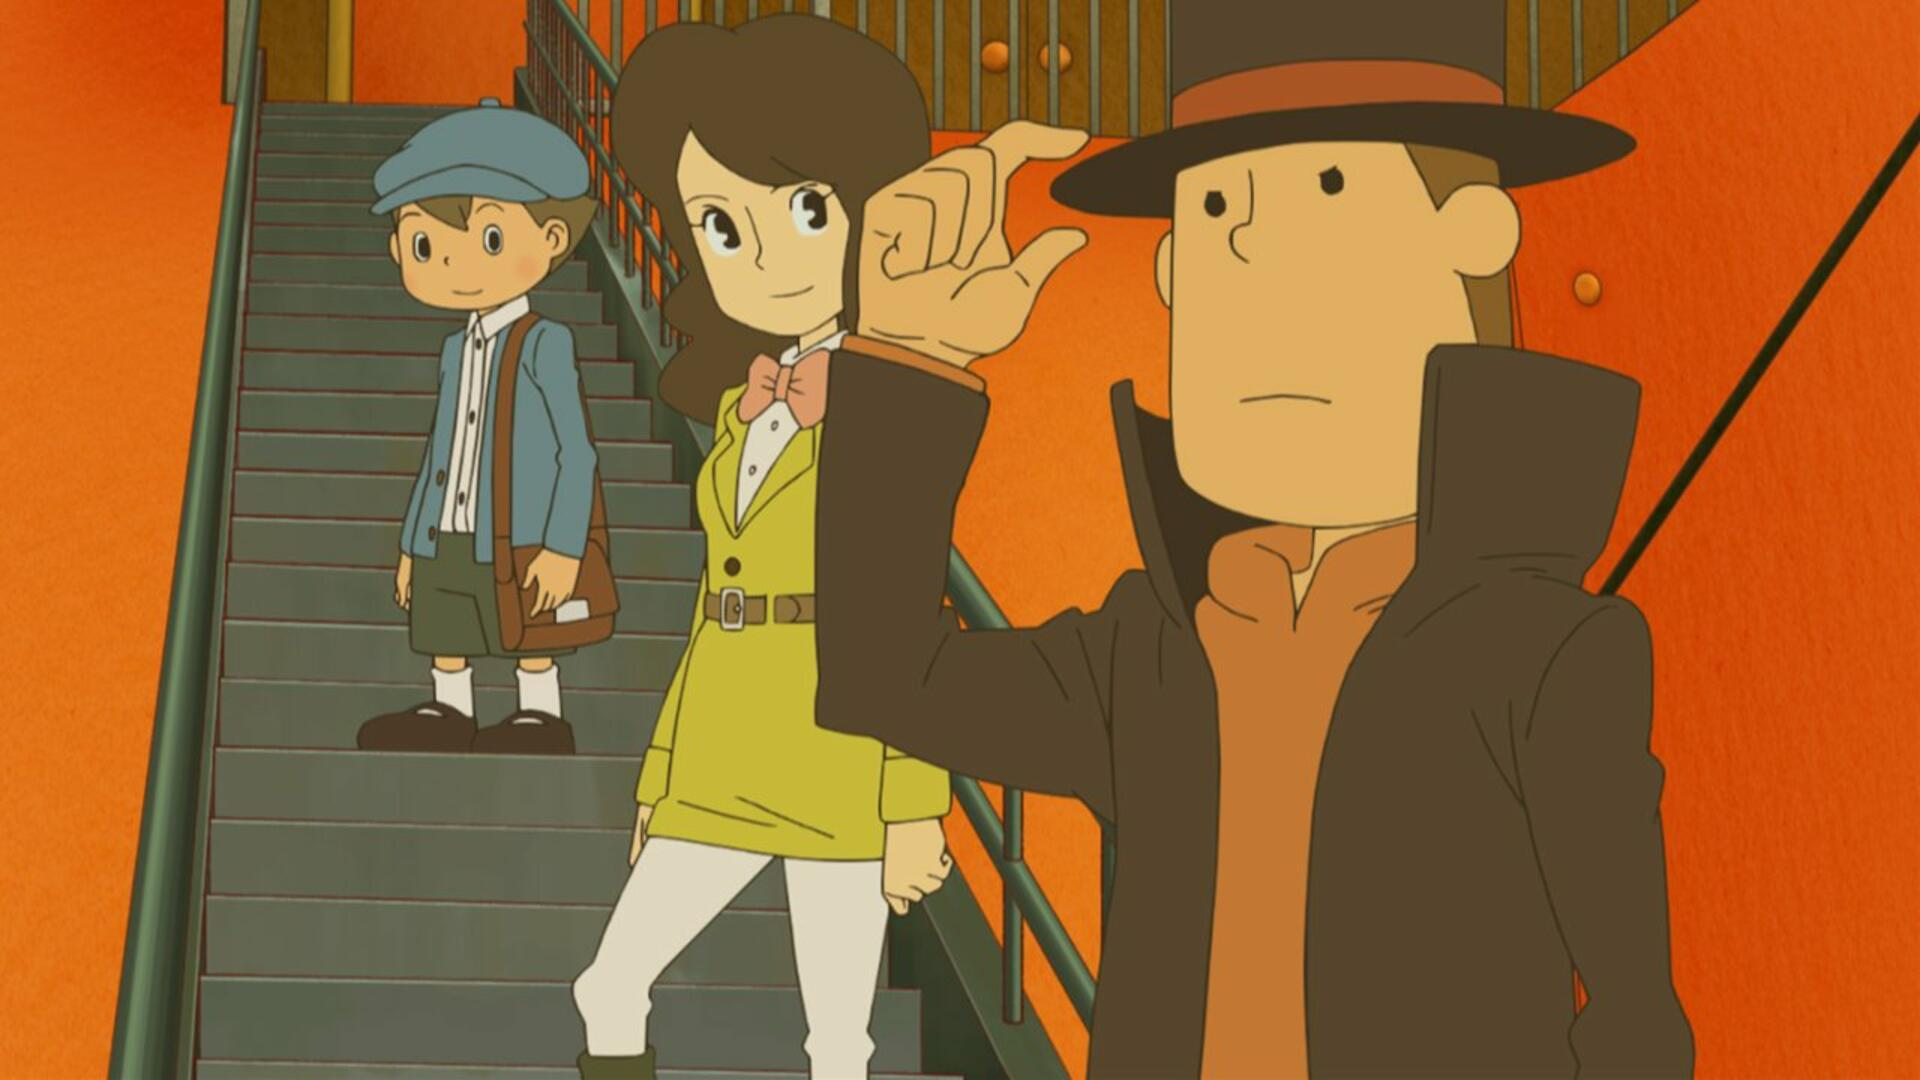 Professor Layton and the Azran Legacy 3DS Review: The Journey's End